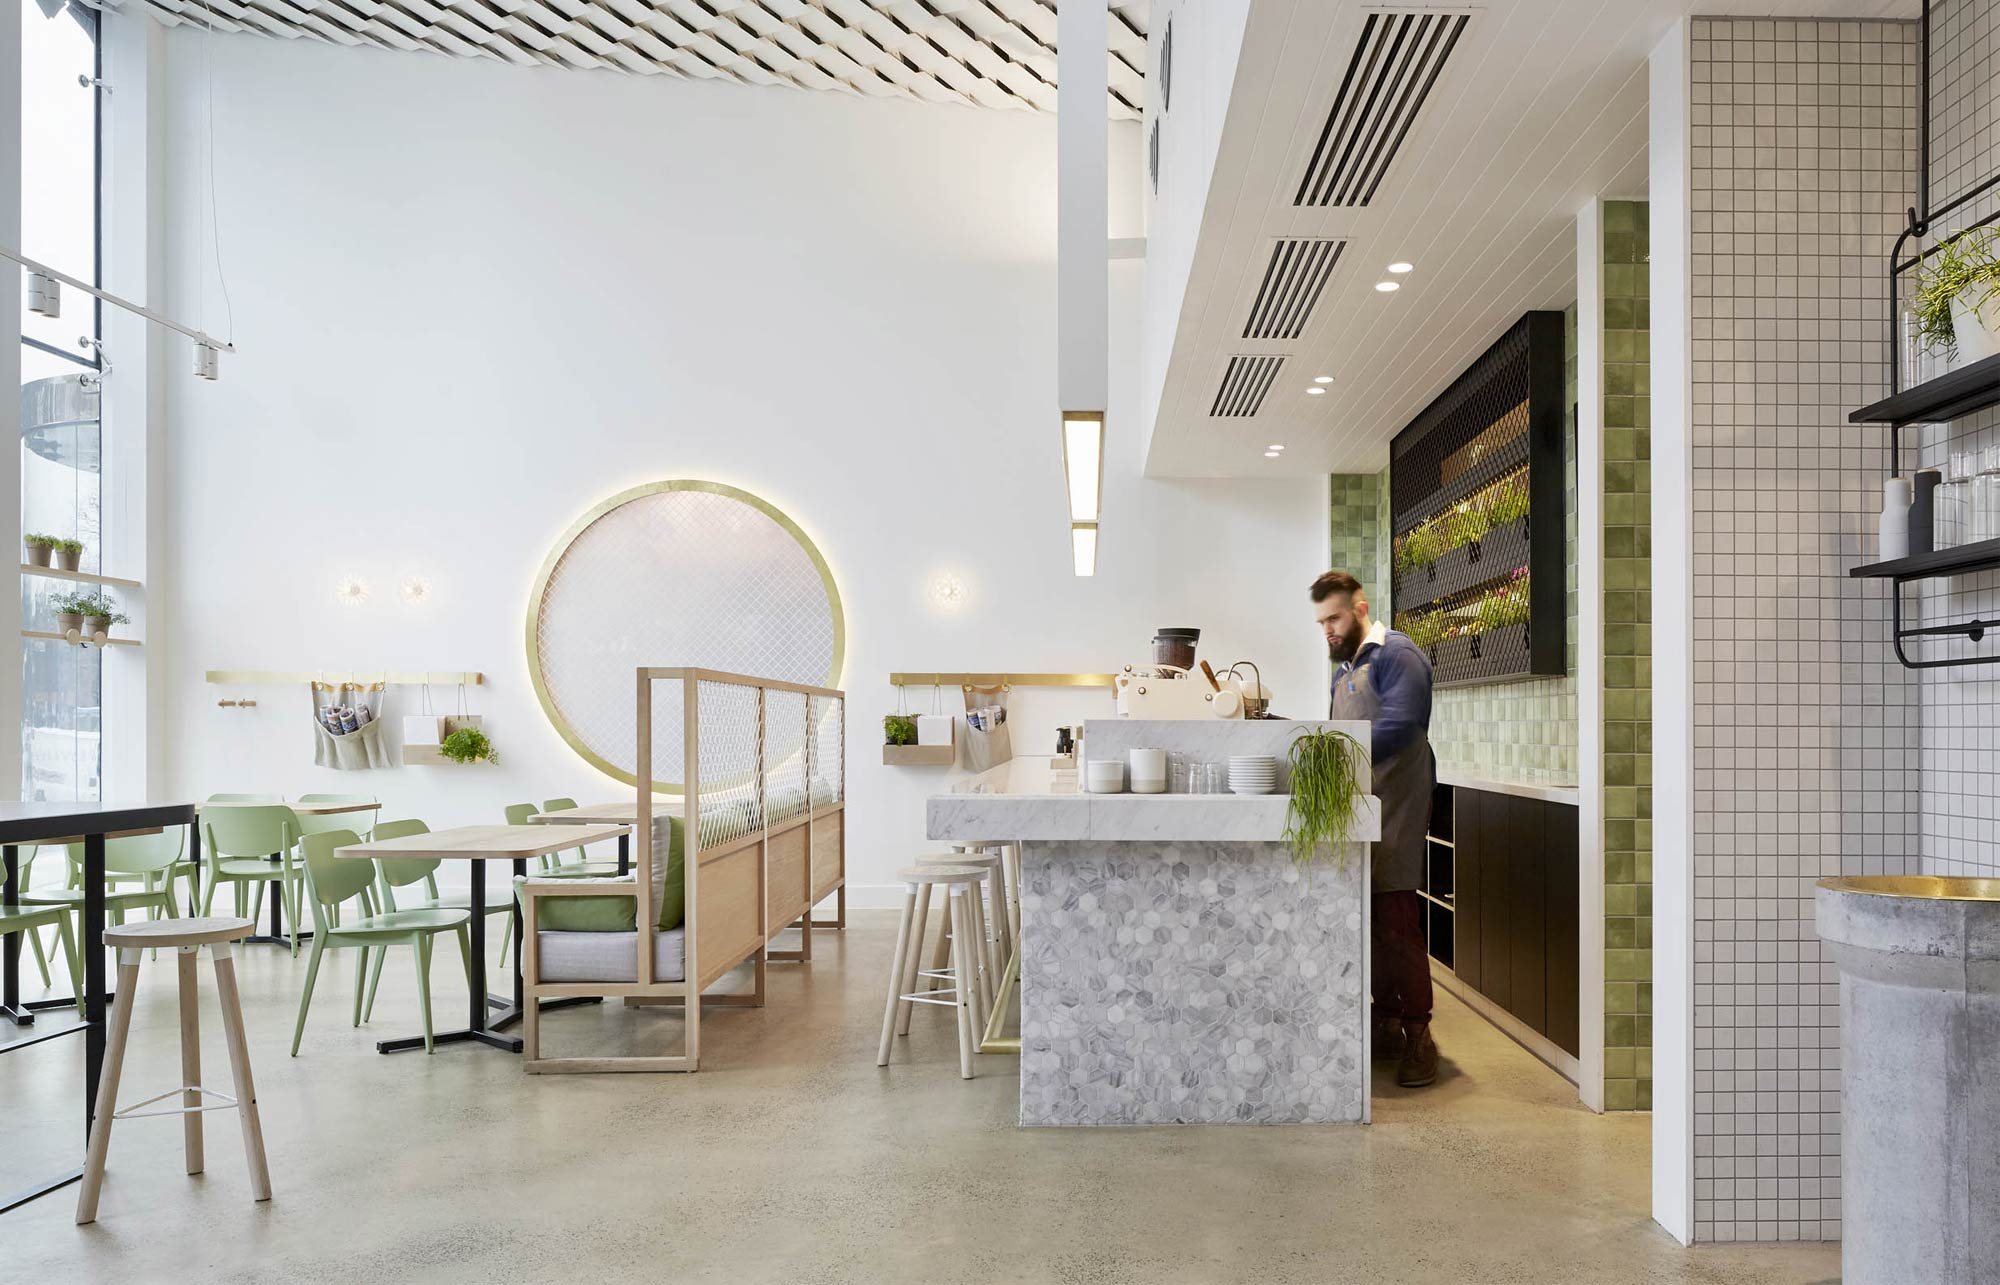 Los 11 Restaurantes Top De Win Awards Diariodesign Com